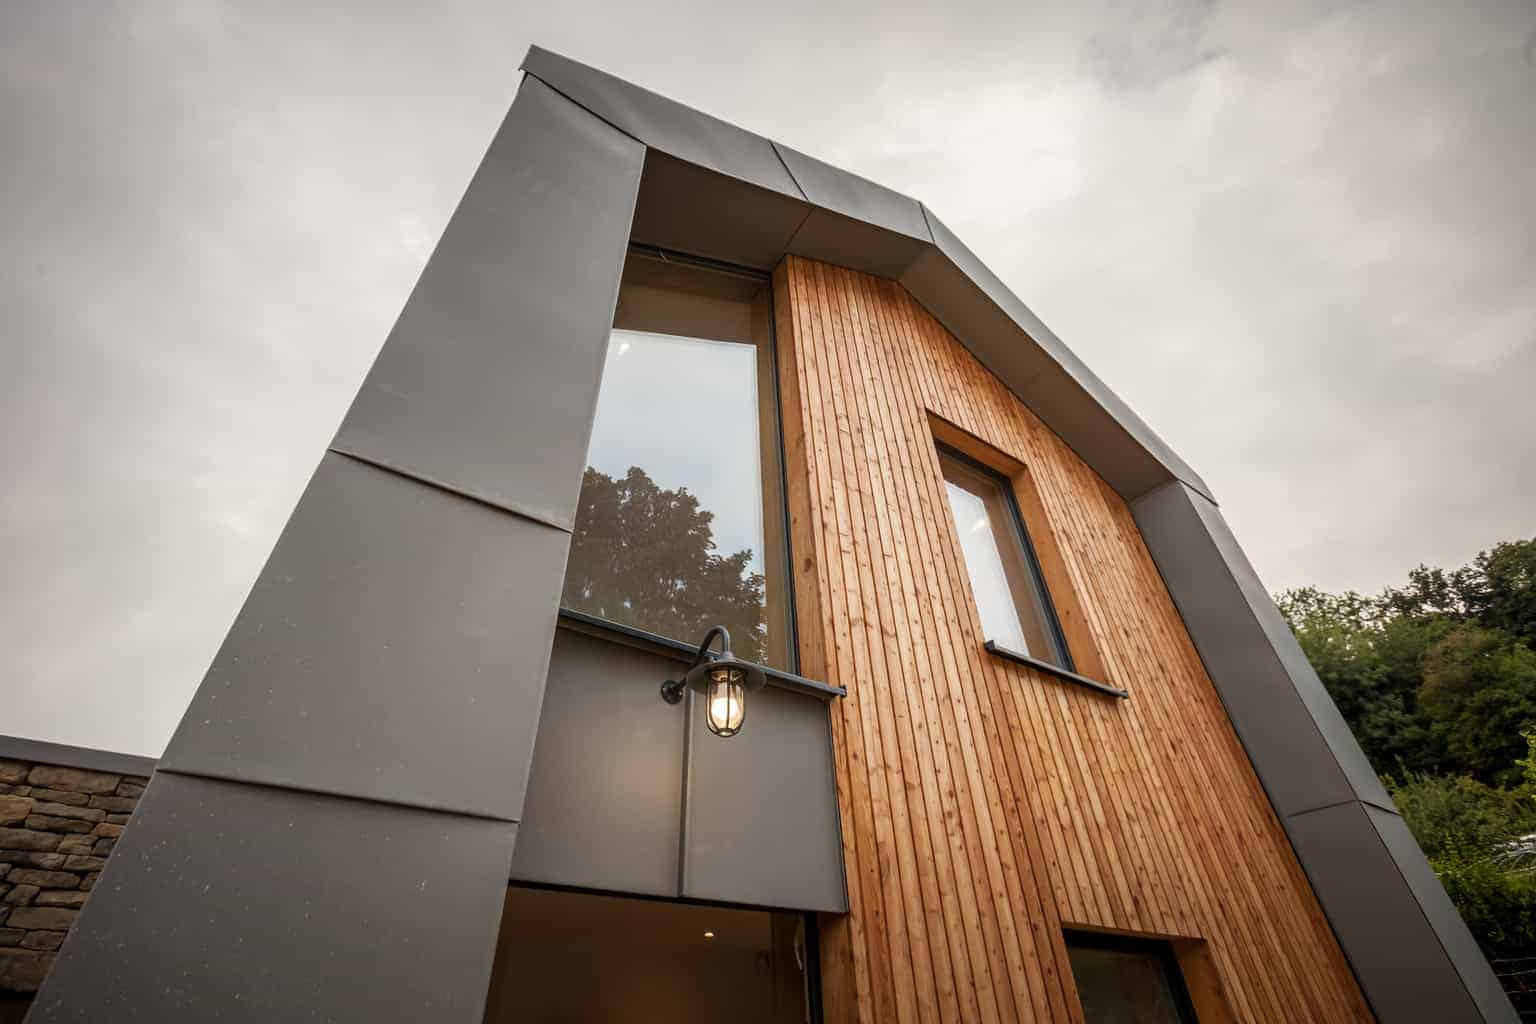 PERFORMANCE windows at Archer Lane newbuild project Sheffield. Photo: Duncan Wiggins www.ninewhilefive.co.uk